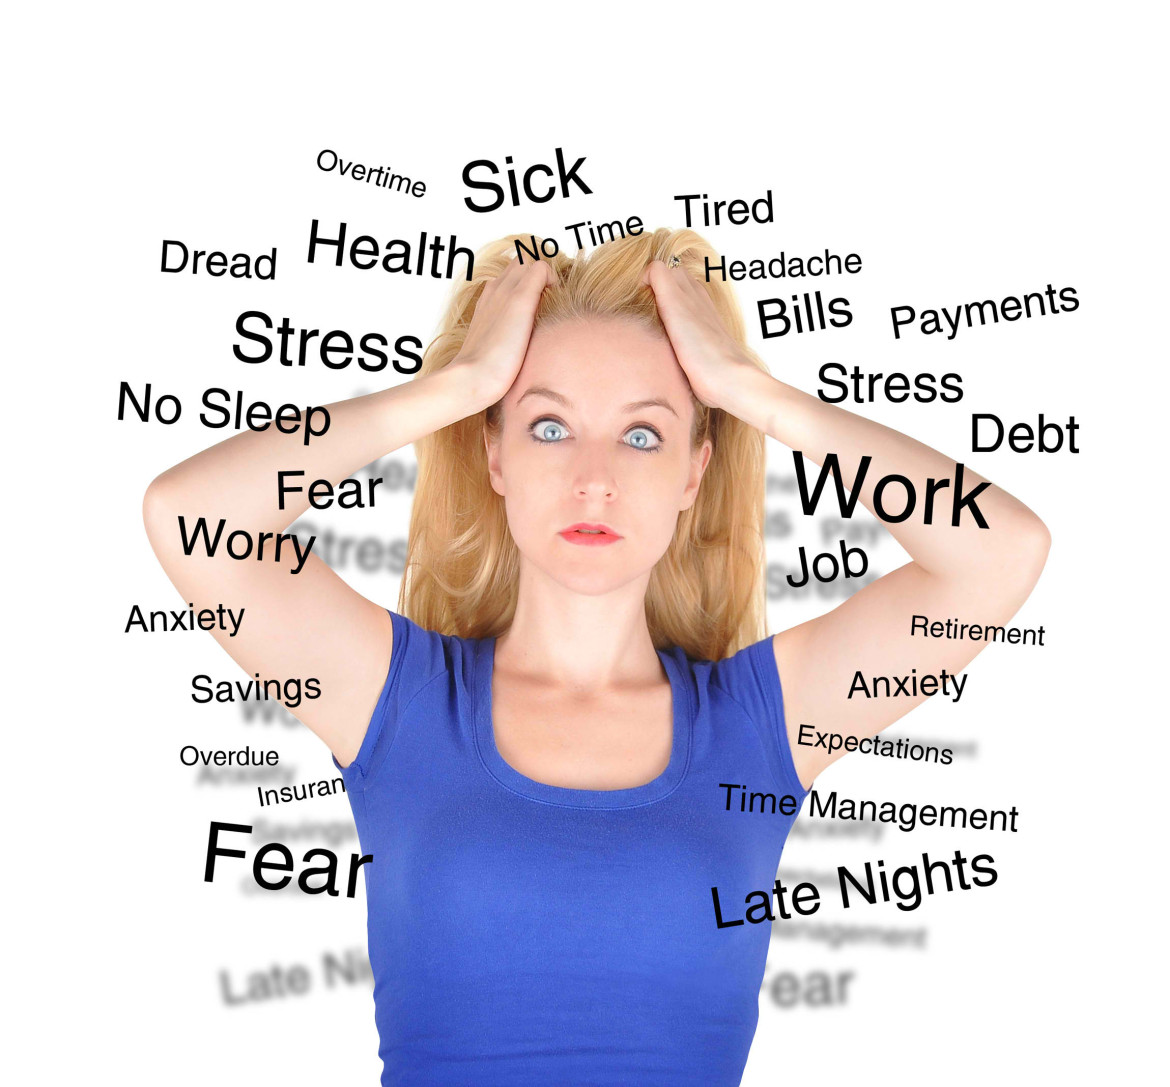 Acupuncture And Panic Attacks - Acupuncture Acupressure Points